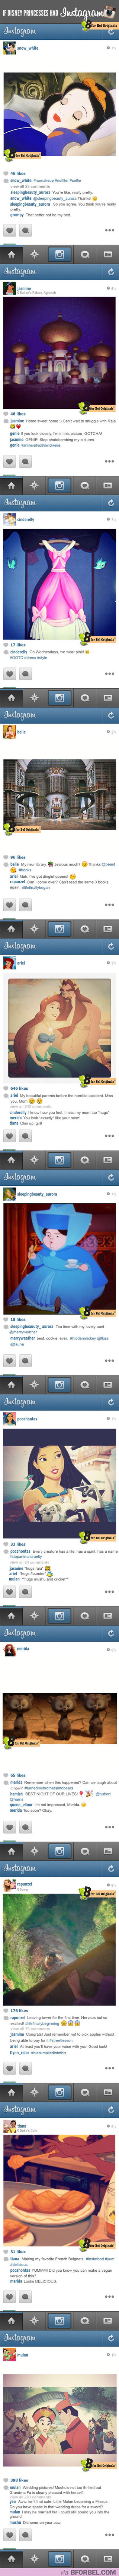 If-The-Disney-Princesses-Used-Instagram-1